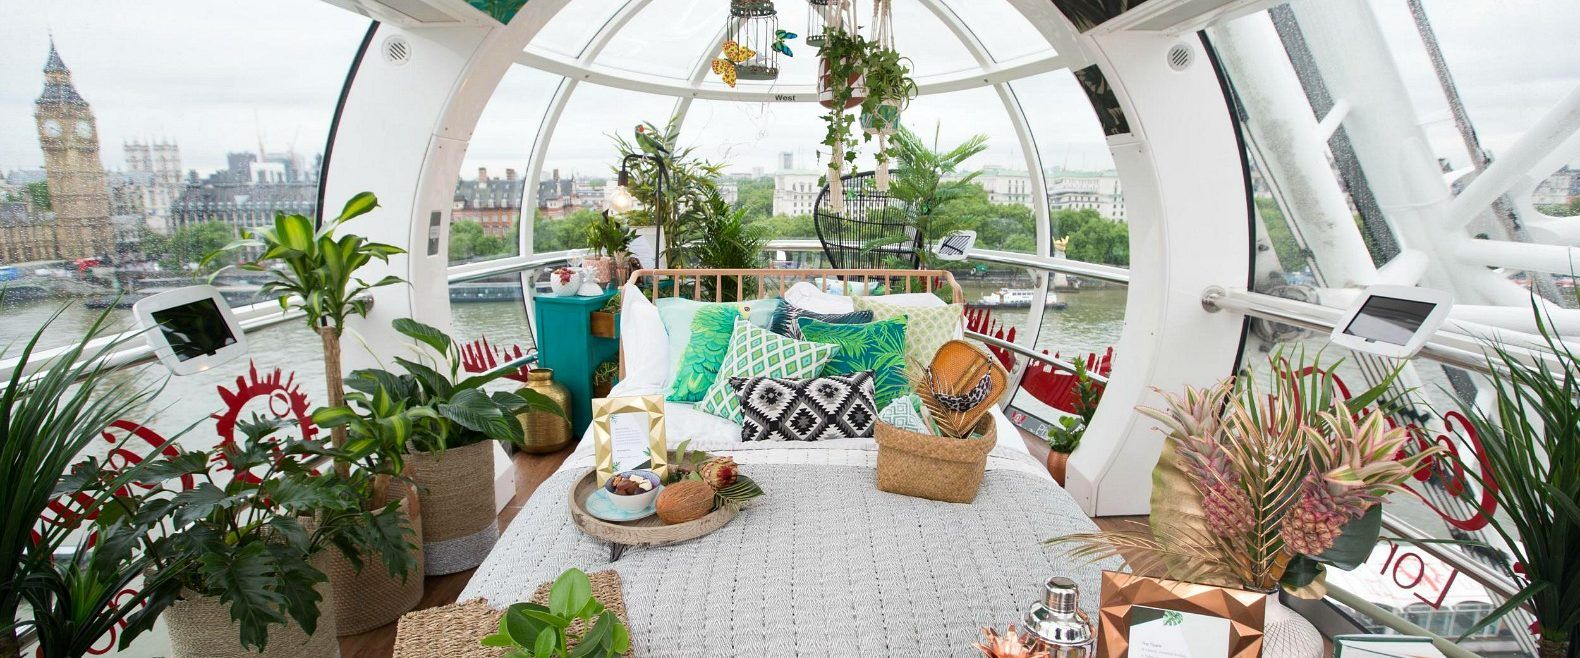 Designed and decorated by the Wayfair team, one of the London Eye capsules has been converted into a stunning rainforest-inspired tiny apartment.